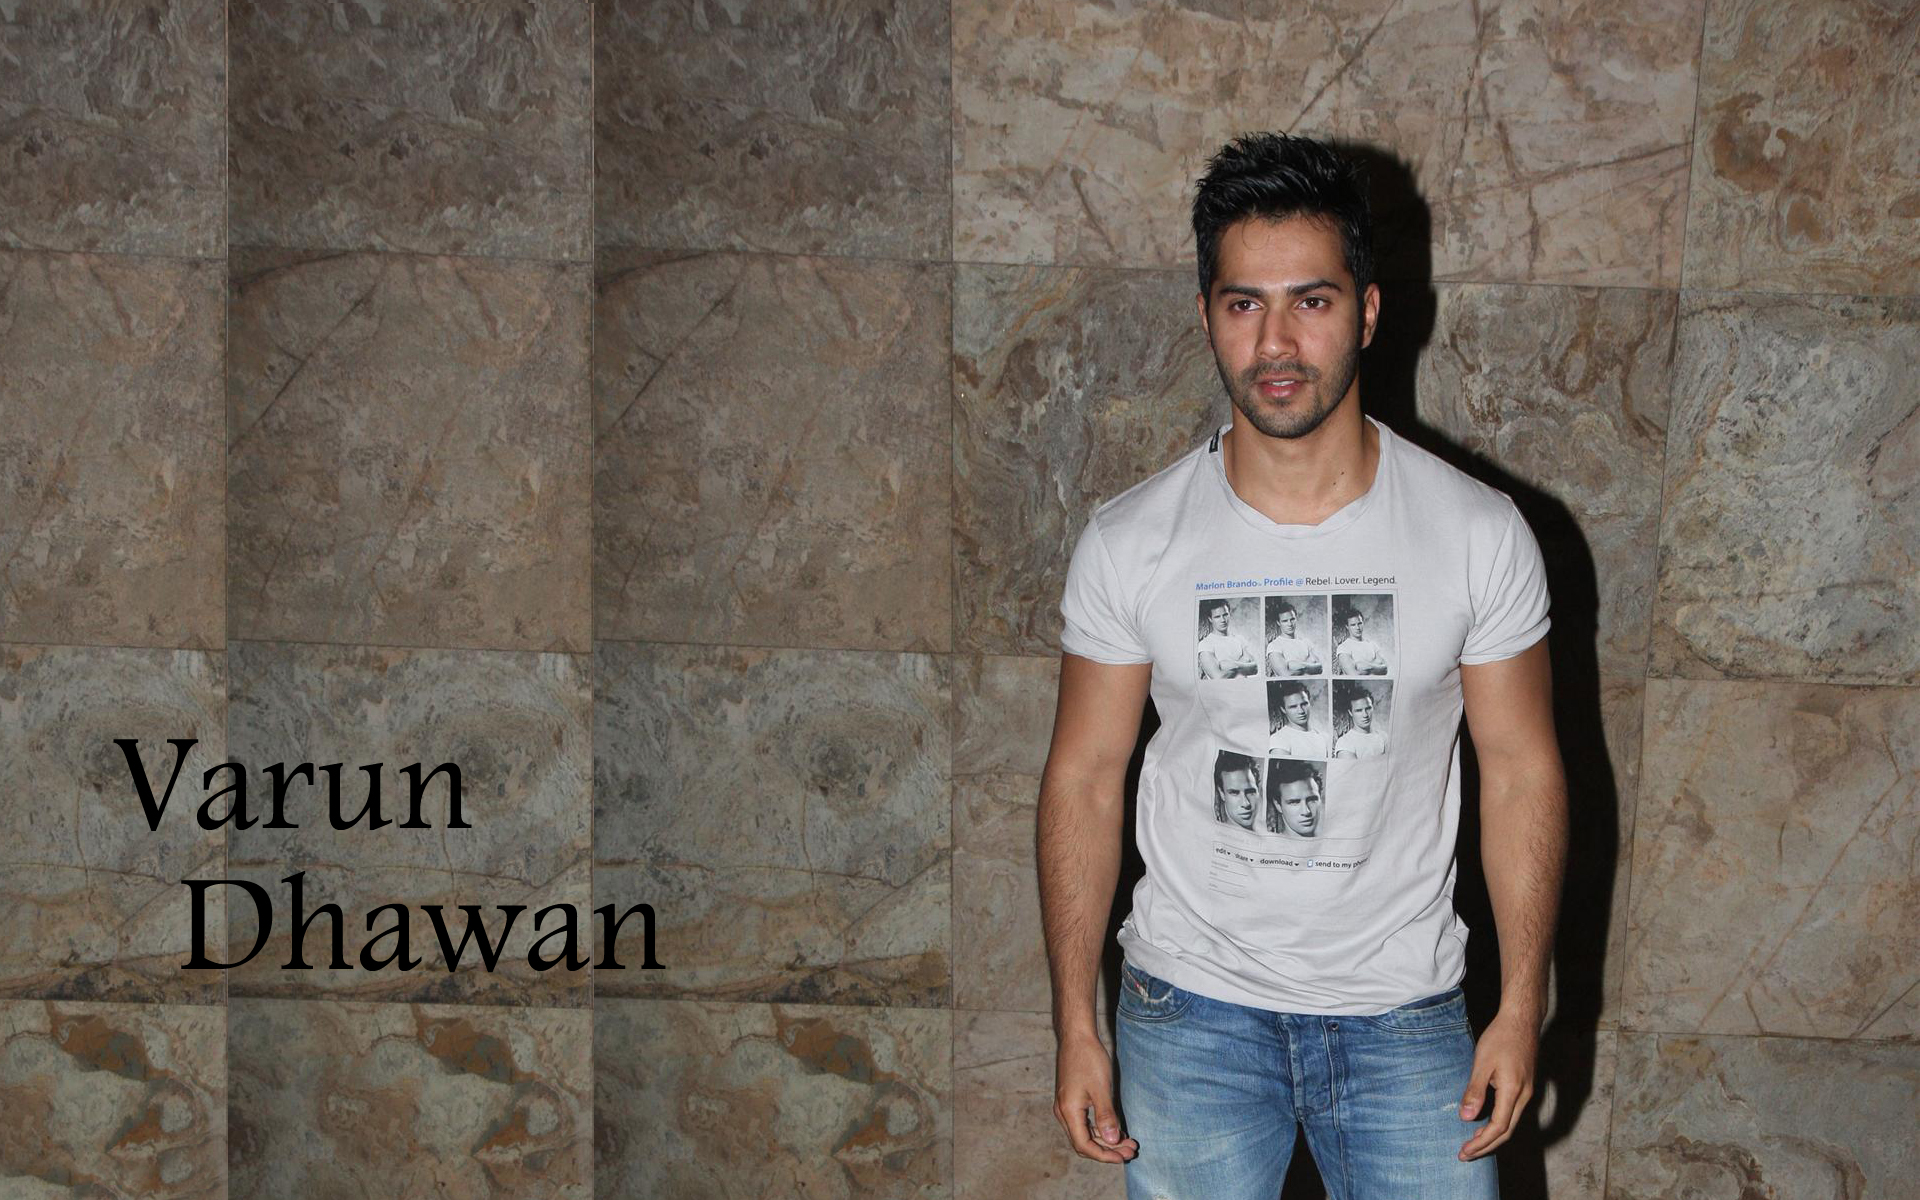 Varun Dhawan Ki Photo